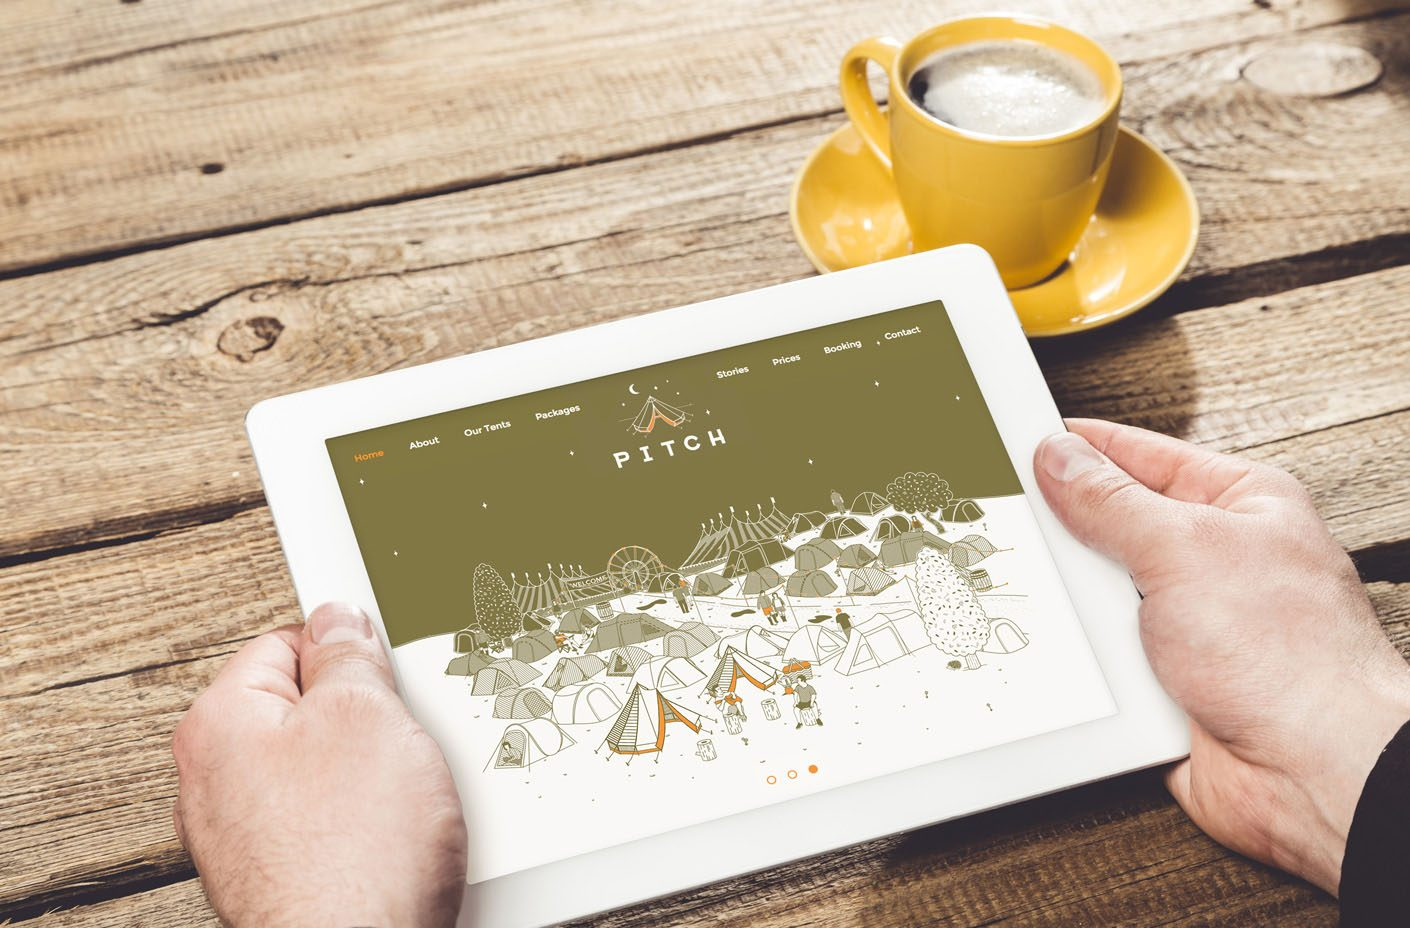 Using the responsive Pitch Tents website on a tablet